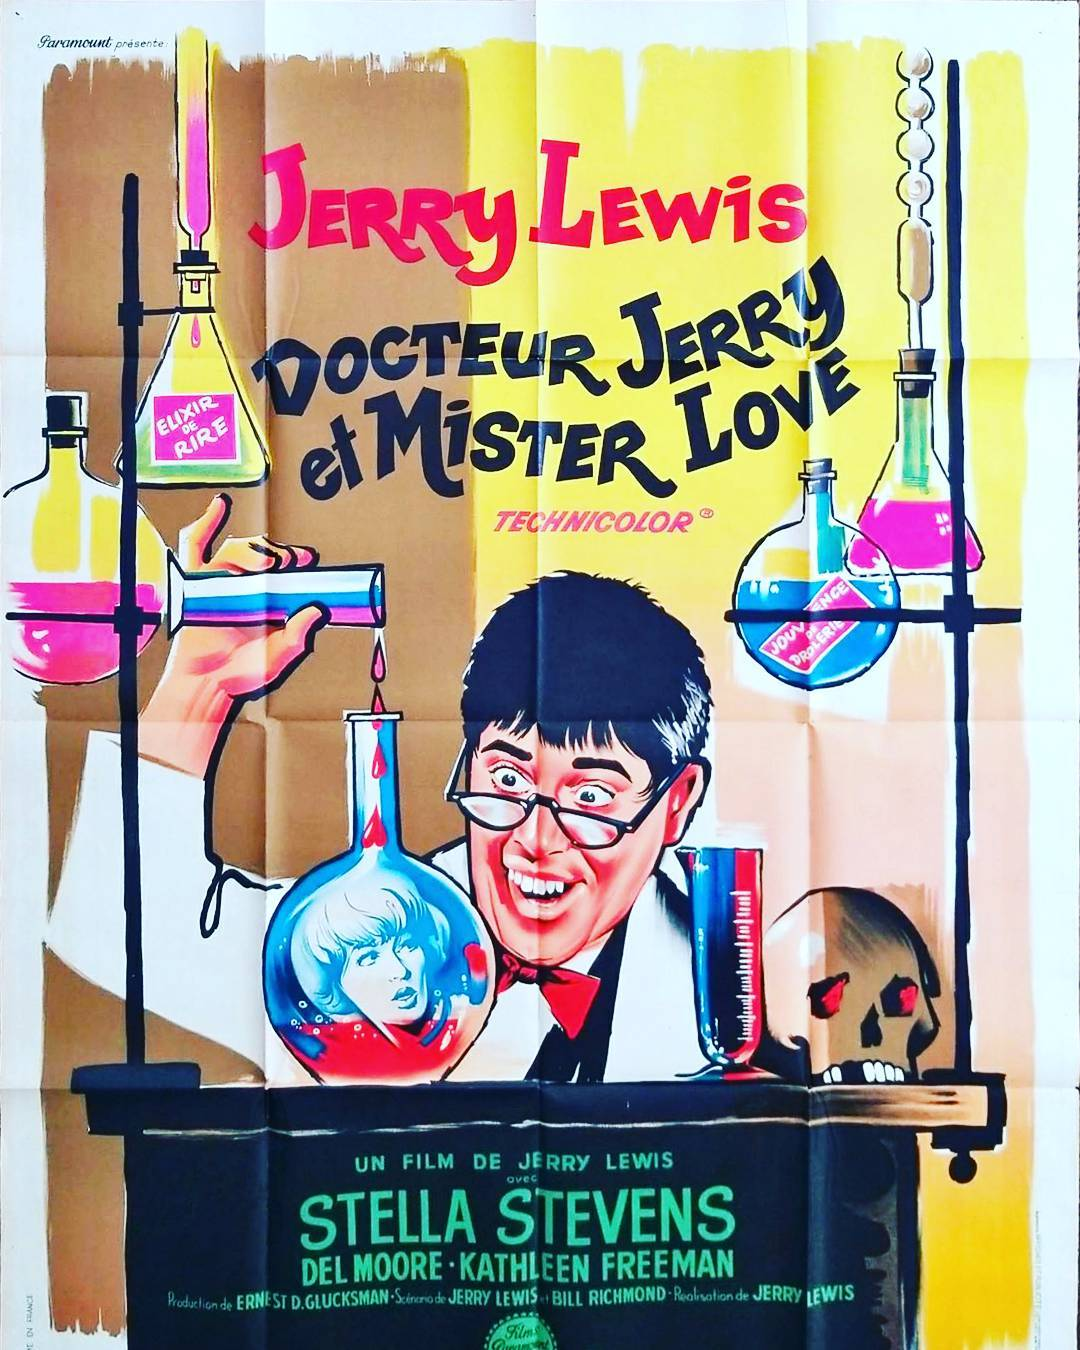 "riginal French one sheet 47″ X 63"" from the movie Docteur Jerry et Mister Love (aka The Nutty Professor) starring Jerry Lewis"